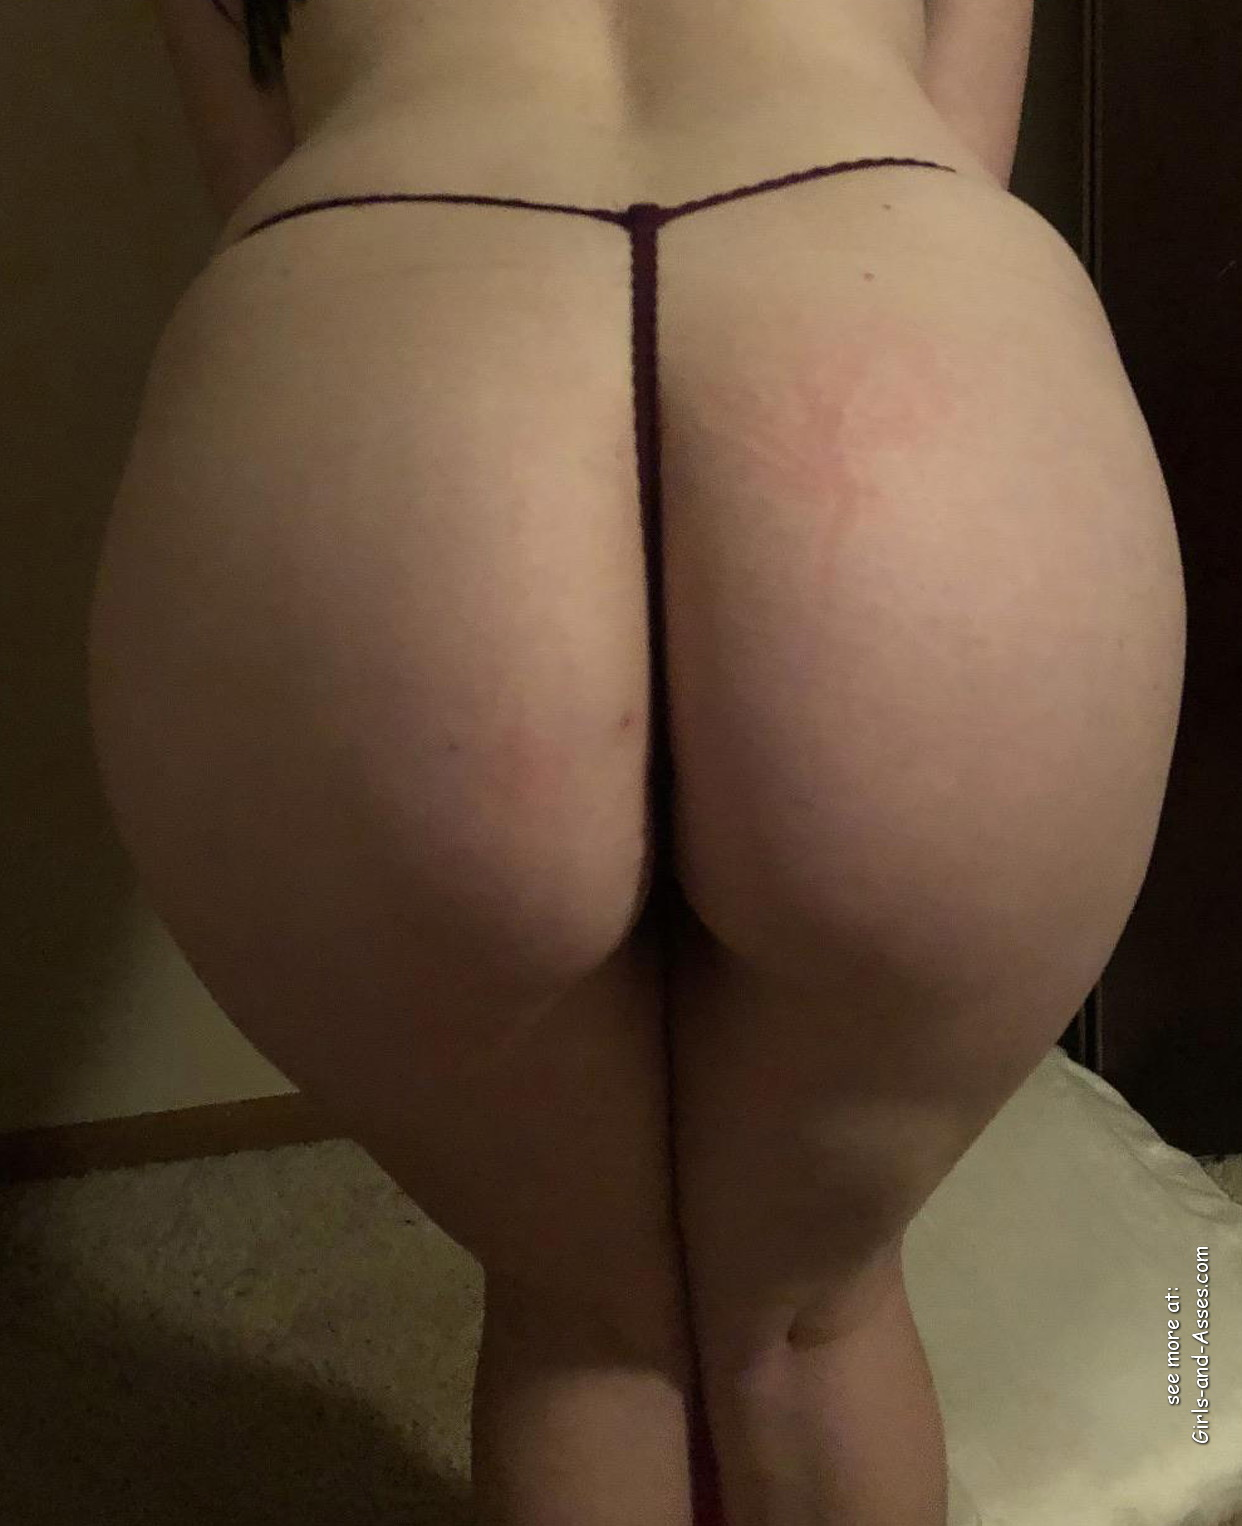 mom big booty milf picture 03428